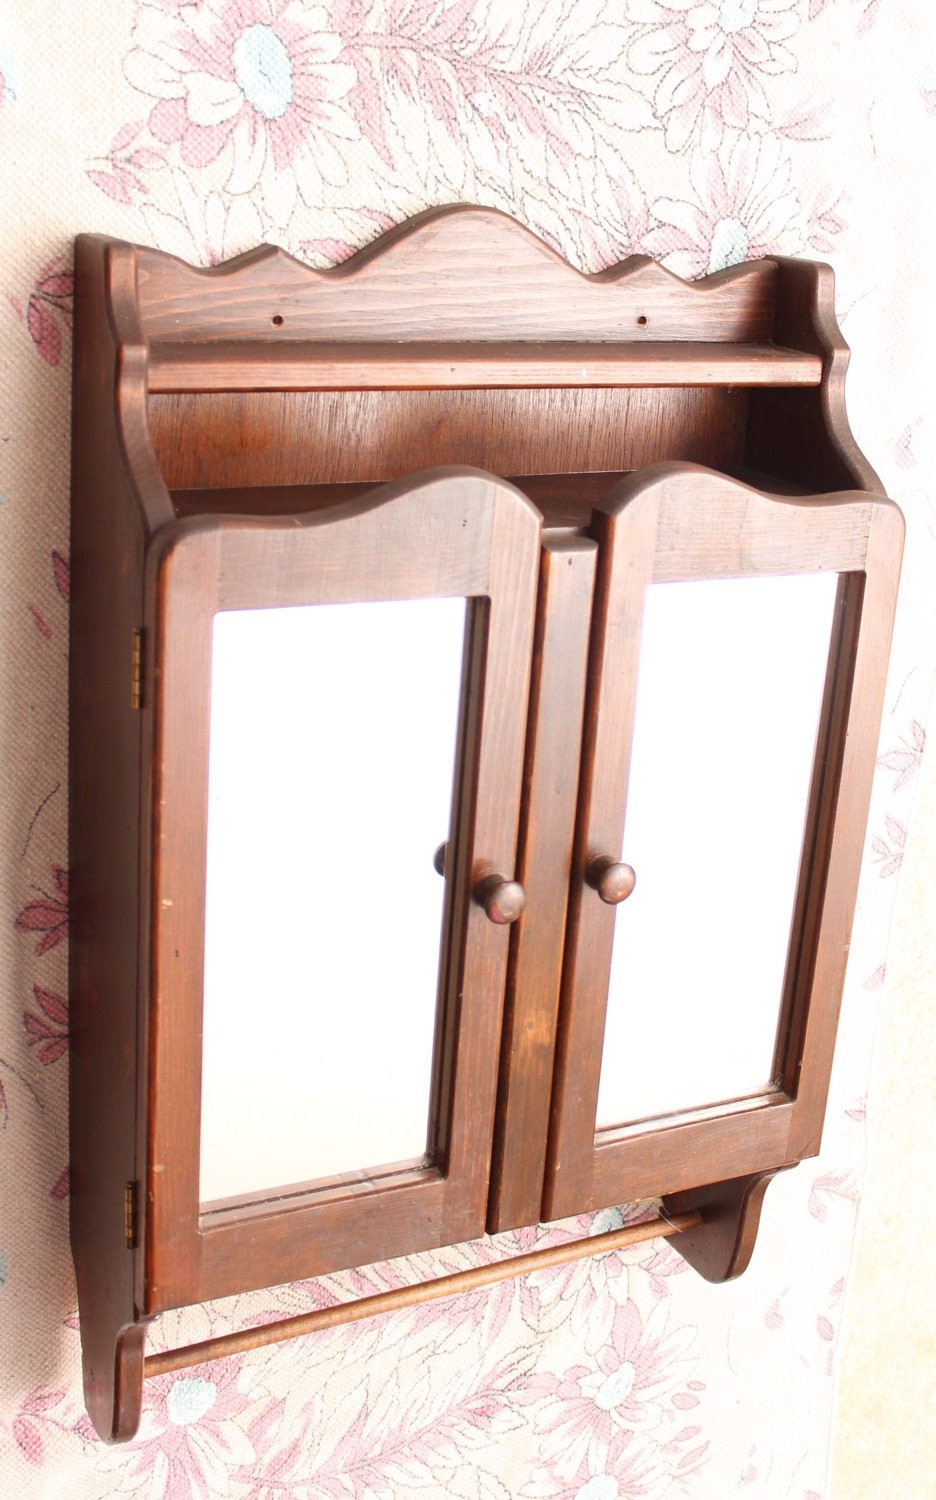 vintage medicine cabinet antique wooden bathroom medicine cabinet by dankvintagefinds 27990